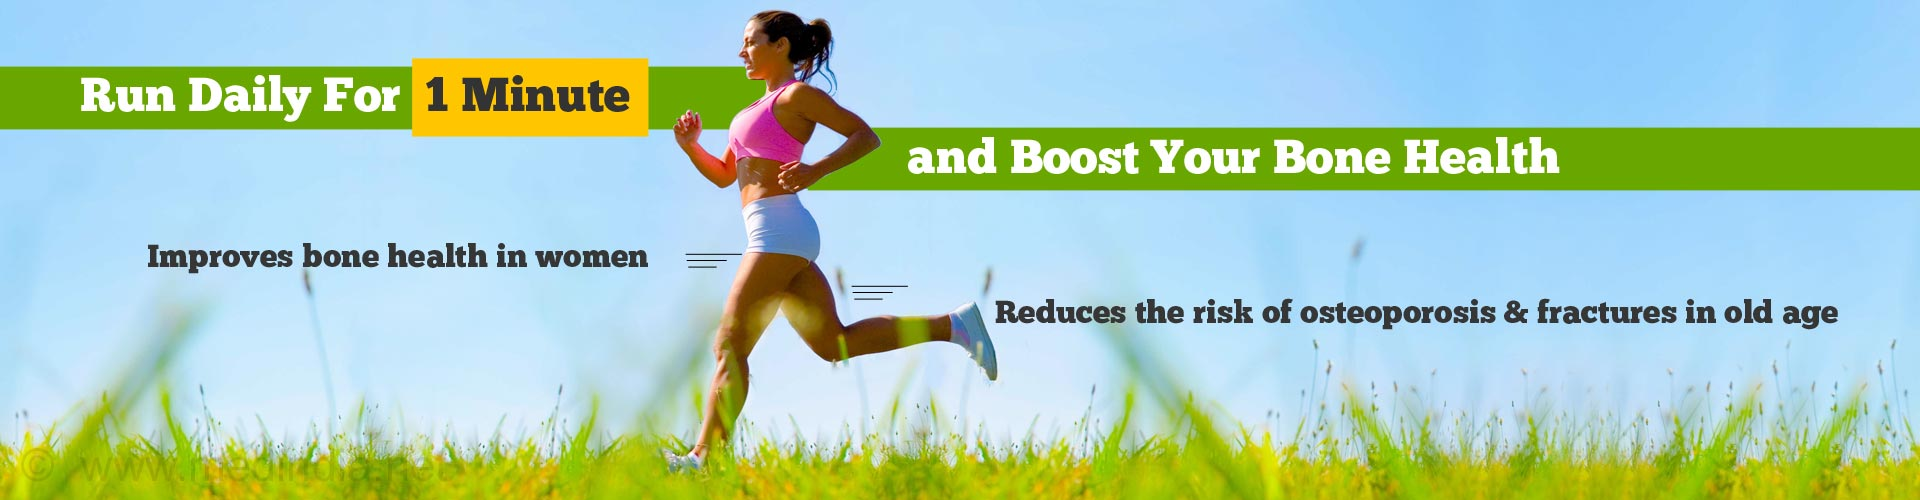 Can Running For Just One Minute Boost Bone Health